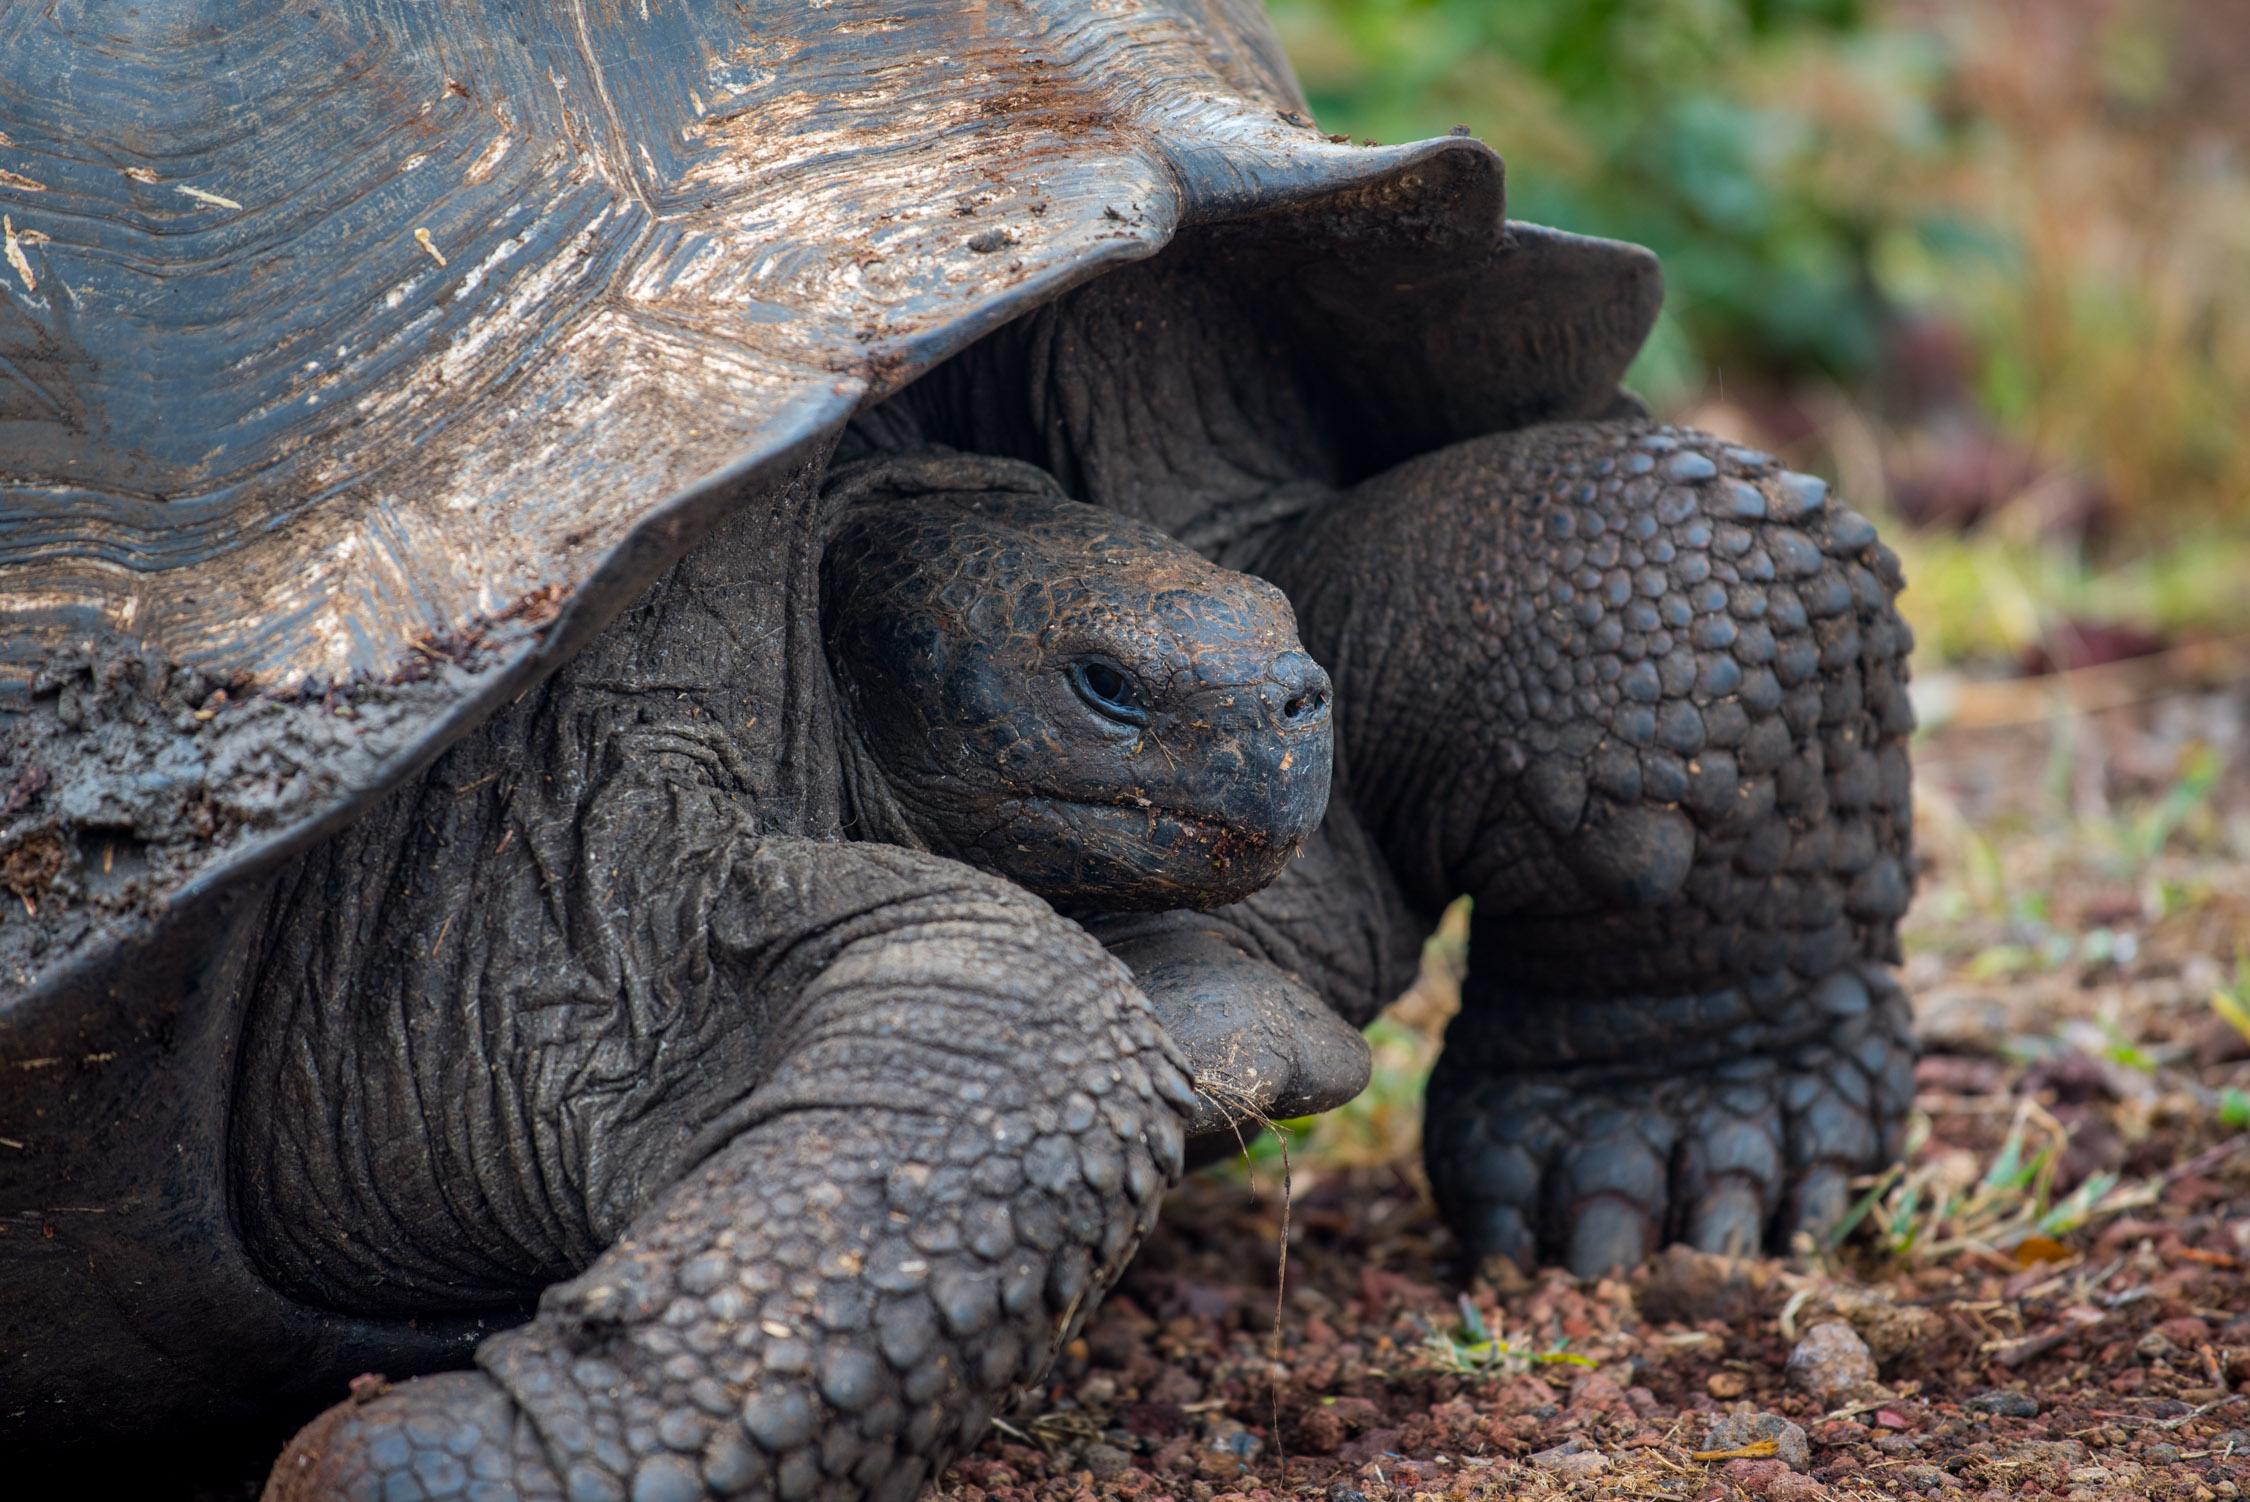 I must have sat watching this Giant tortoise eat grass for about 15 minutes...in complete awe that I was this close to such an ancient creature